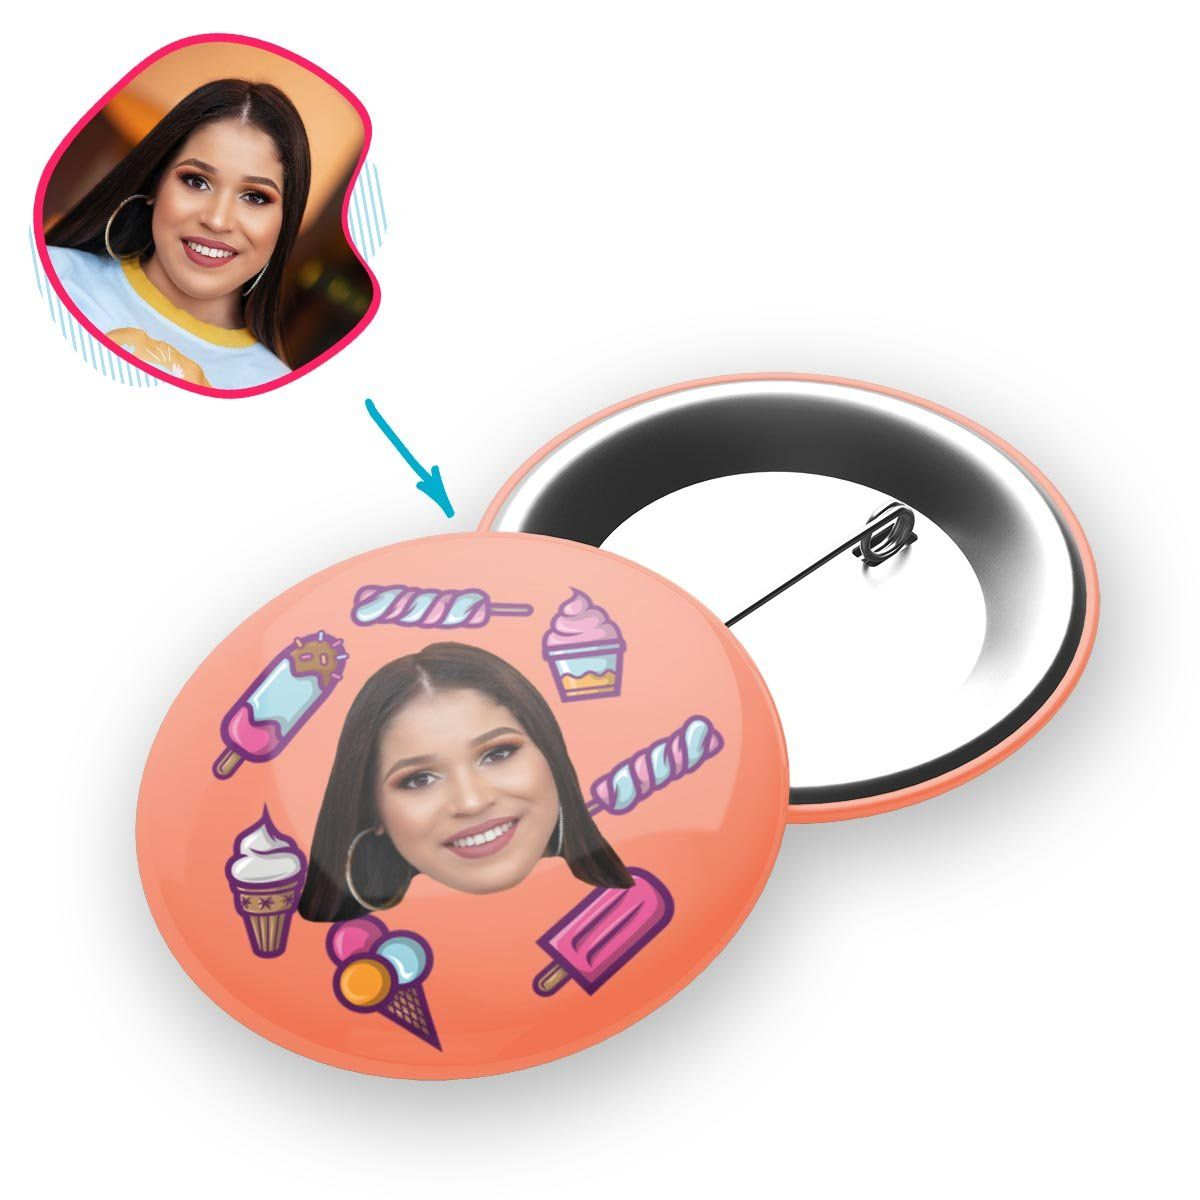 salmon Candies pin personalized with photo of face printed on it